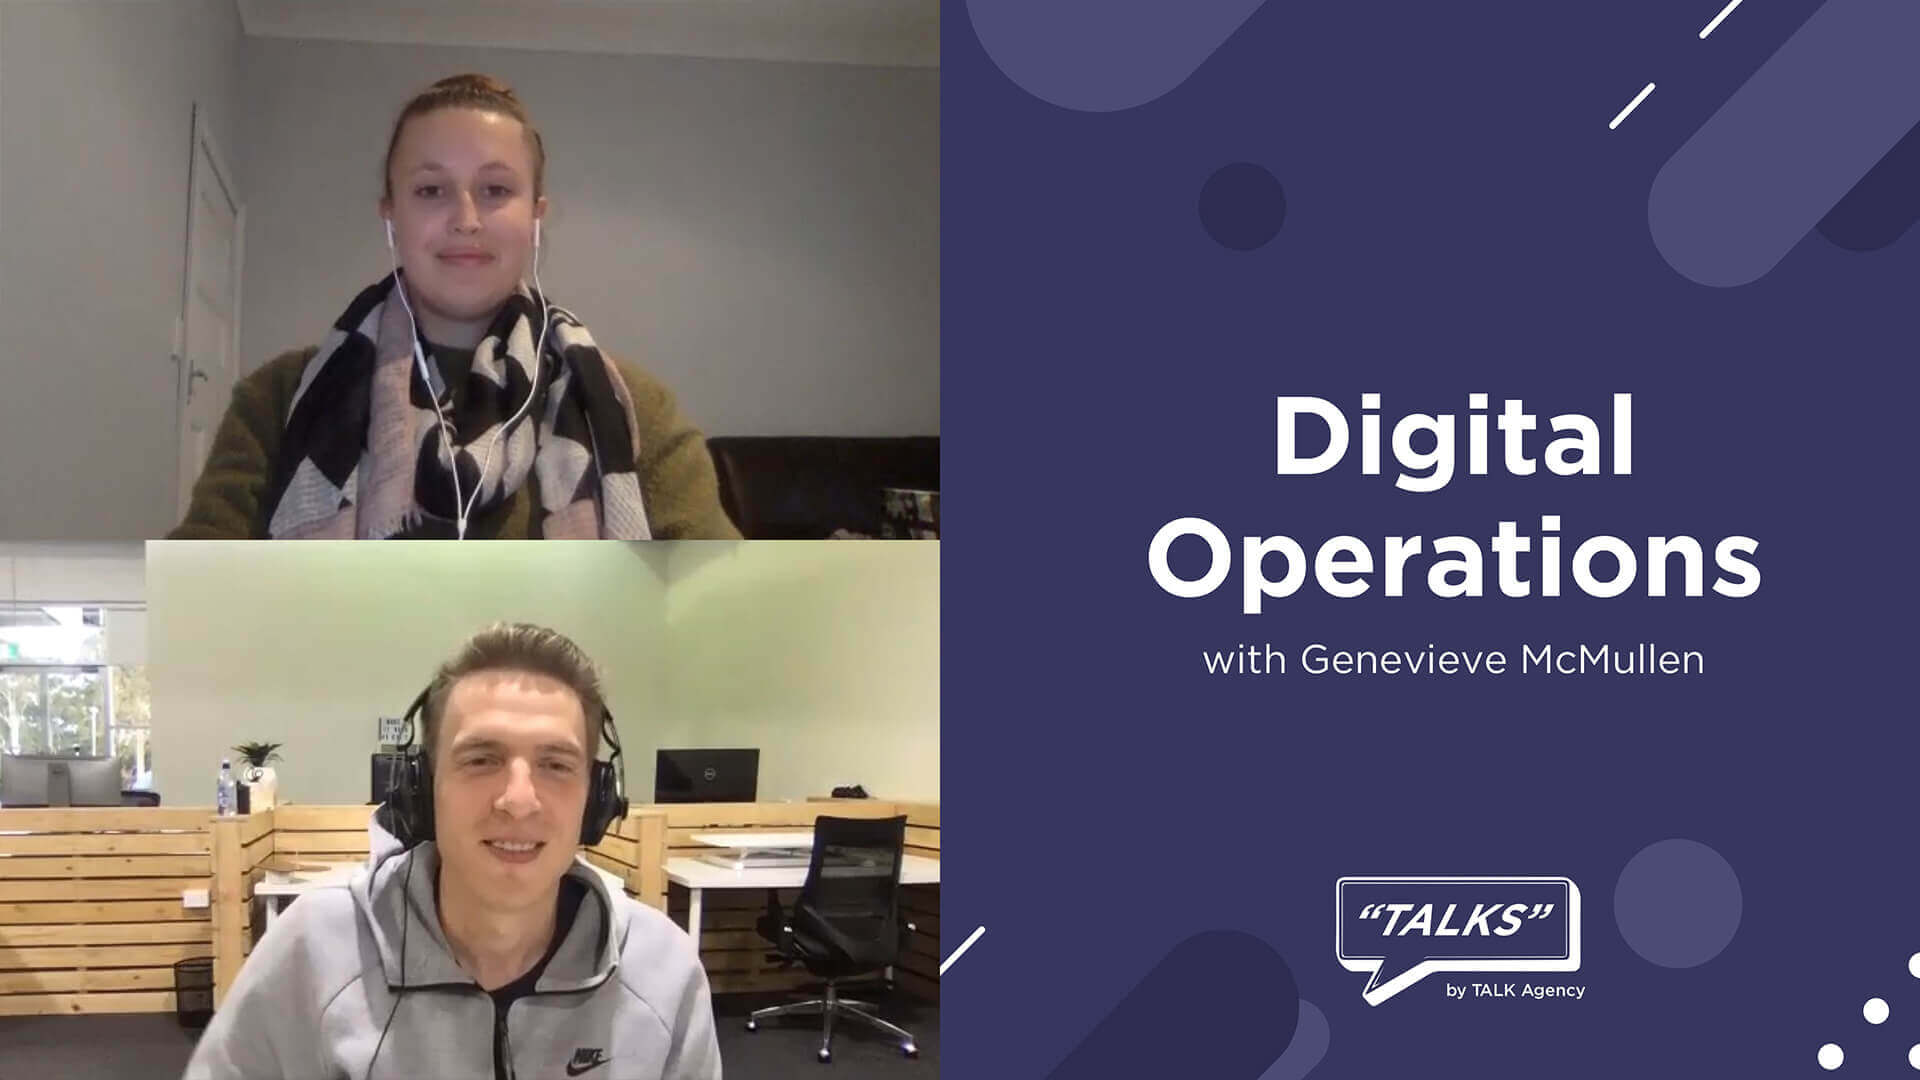 Digital Operations with Genevieve McCulllen